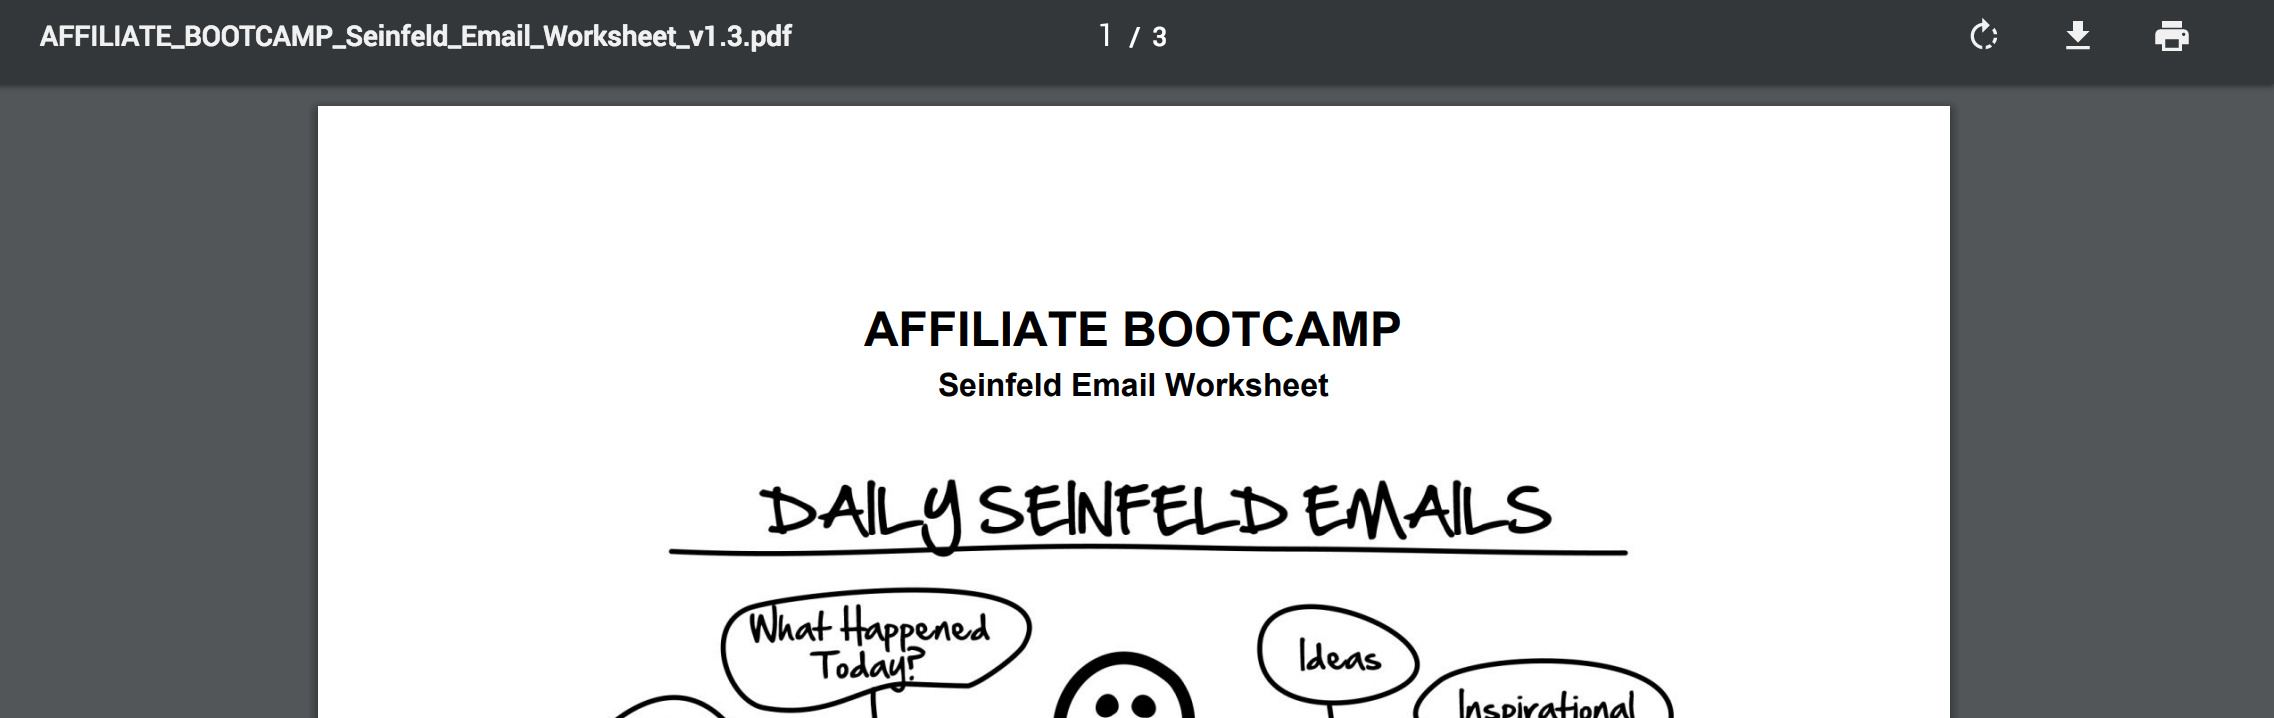 PDF - Day 12 - Step 2 of 4 Download Your Seinfeld Emails Worksheet